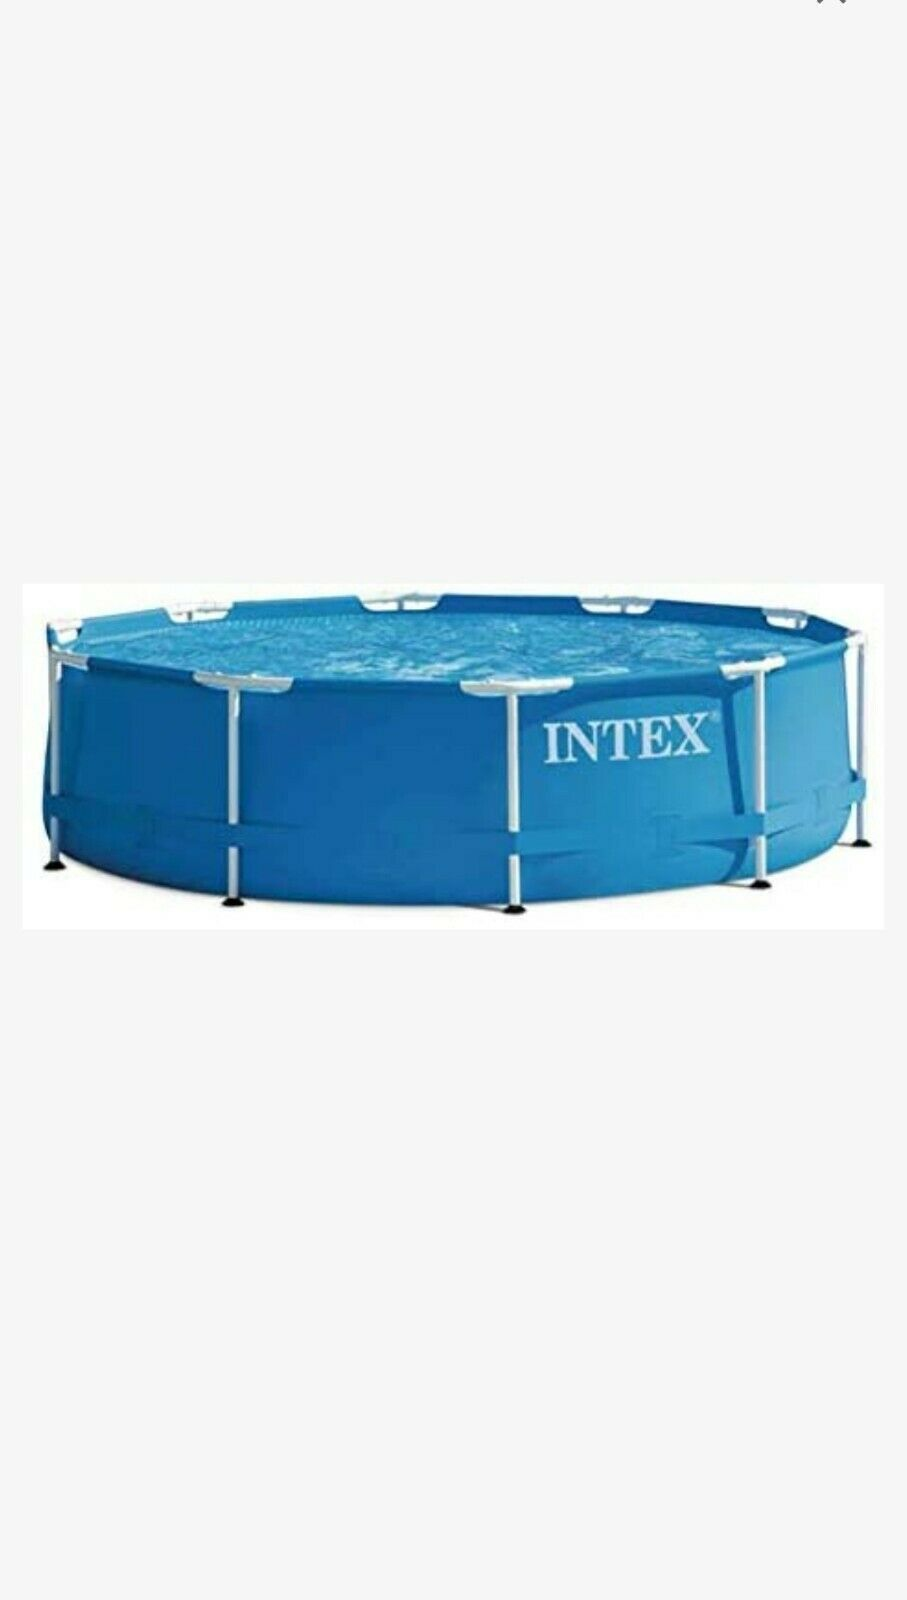 Intex 28202UK 10ft x 30in With Filter Pump, 4500 liters, Blue, 305x76 cm